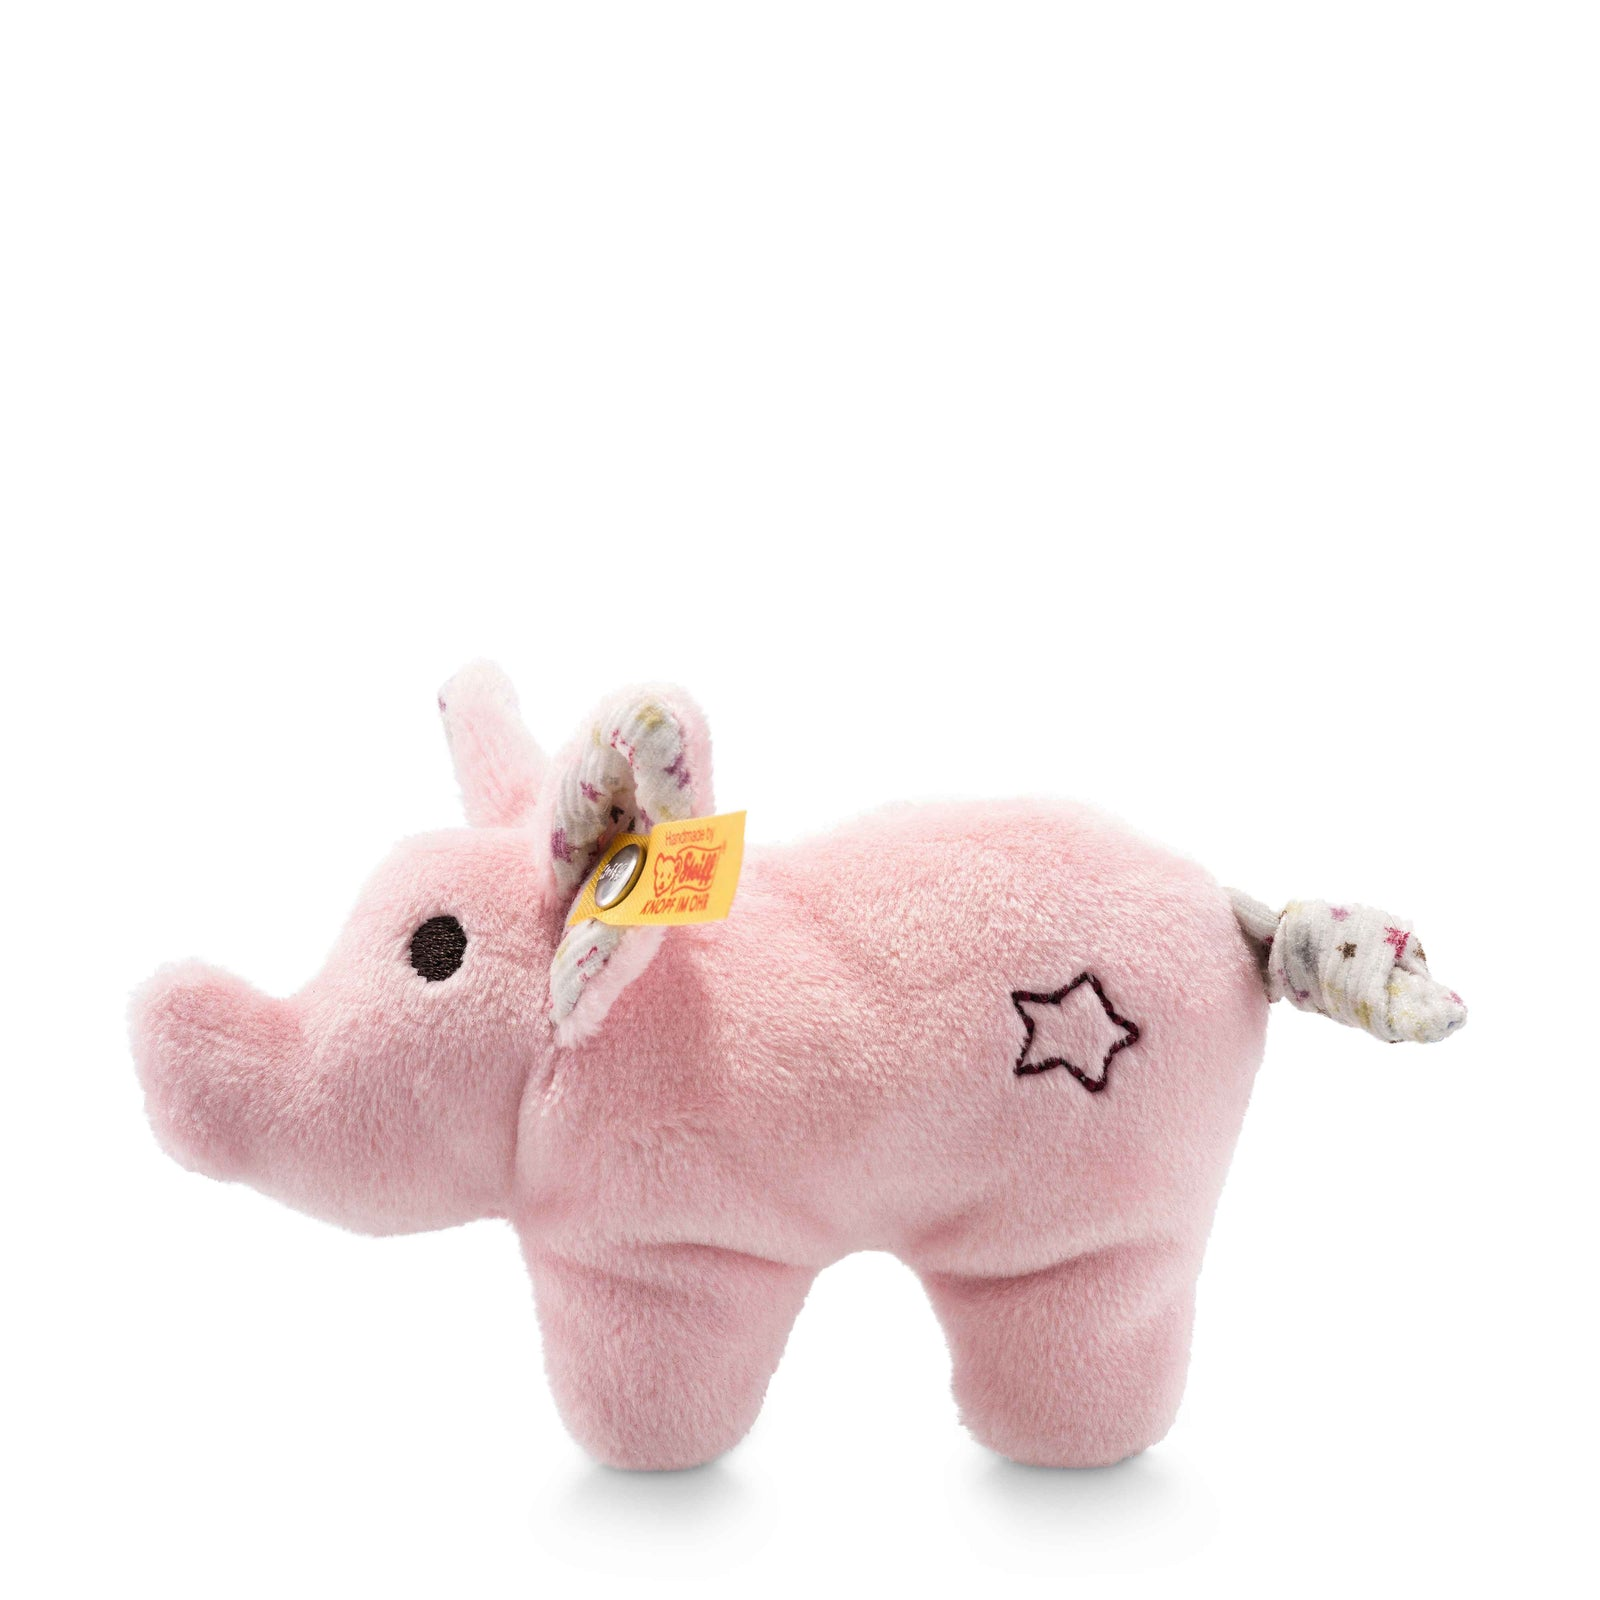 Steiff Mini Pig with Rustling Foil and Rattle - EAN 240652